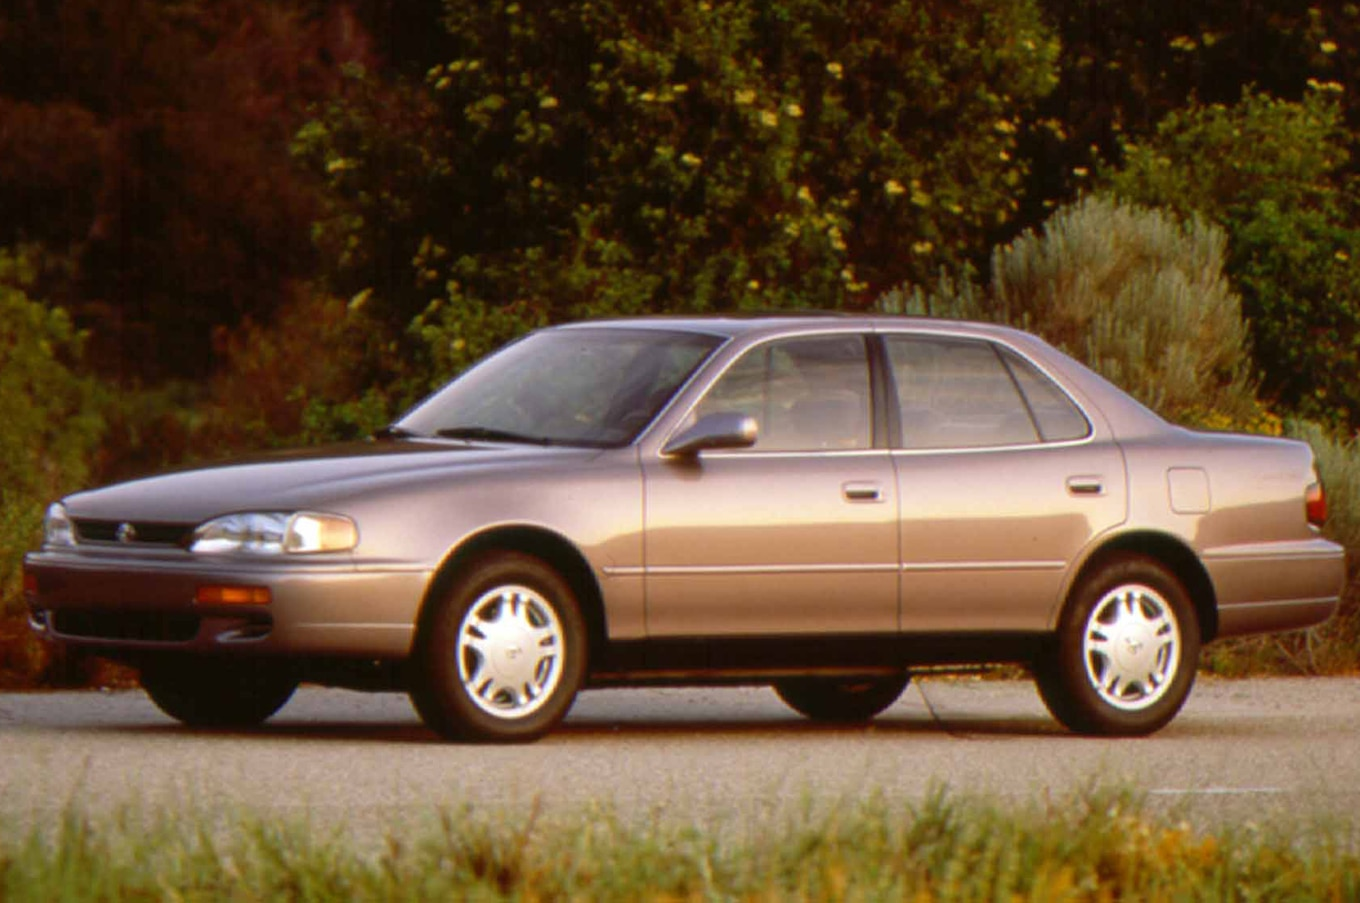 Toyota Camry-palooza: Staff Tales Of America's Best